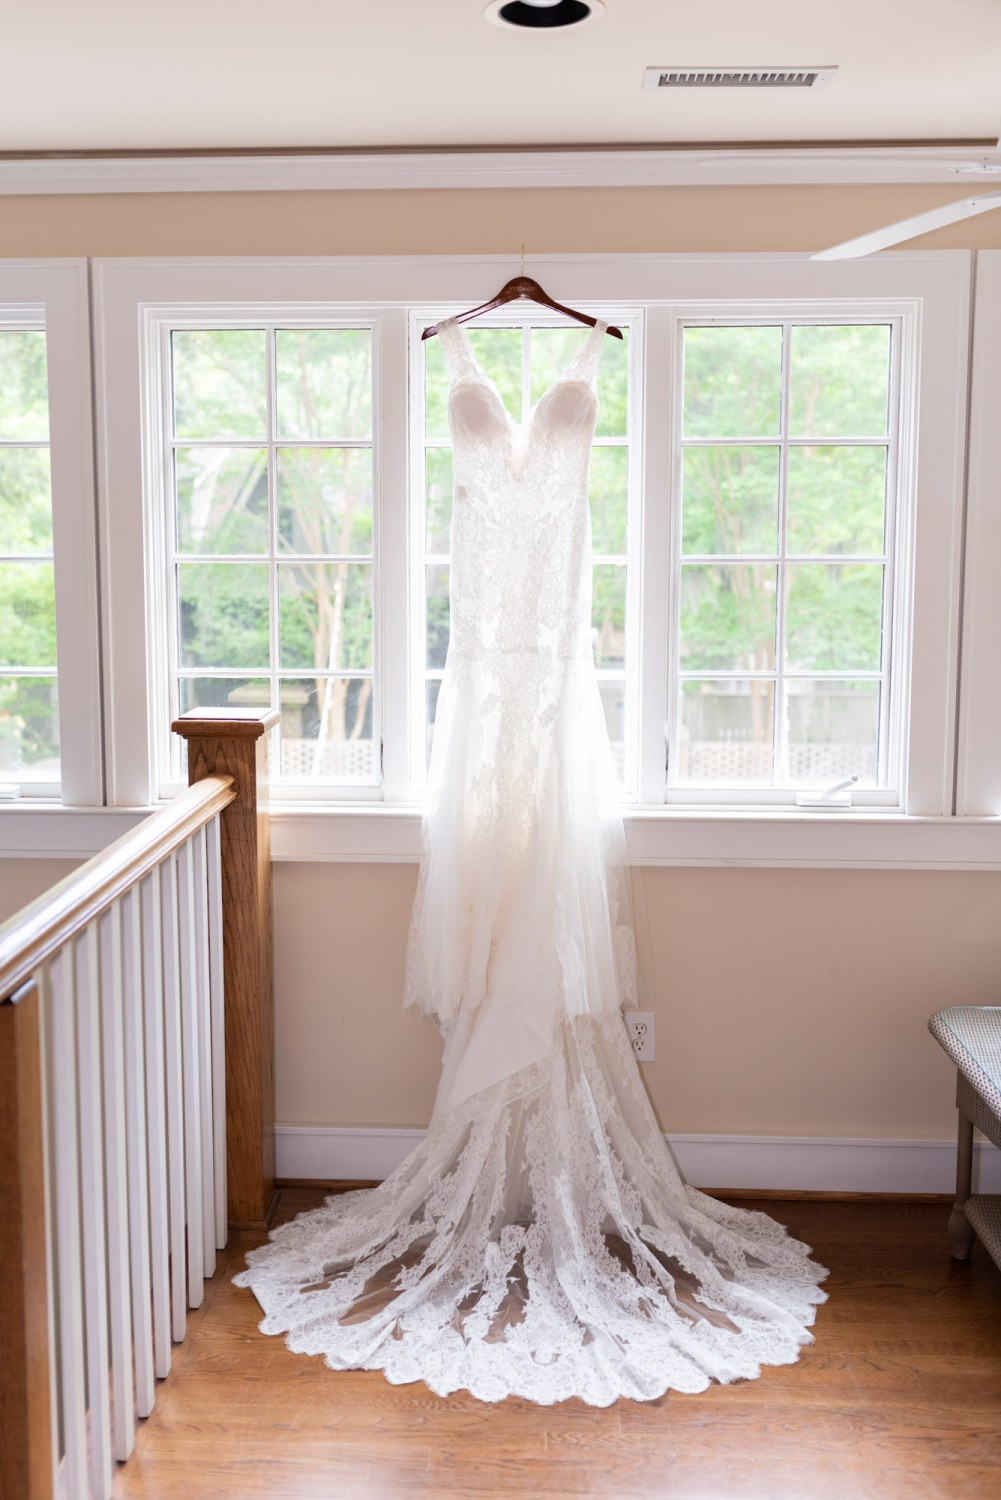 Wedding Dress hanging in the window - Brookgreen Gardens